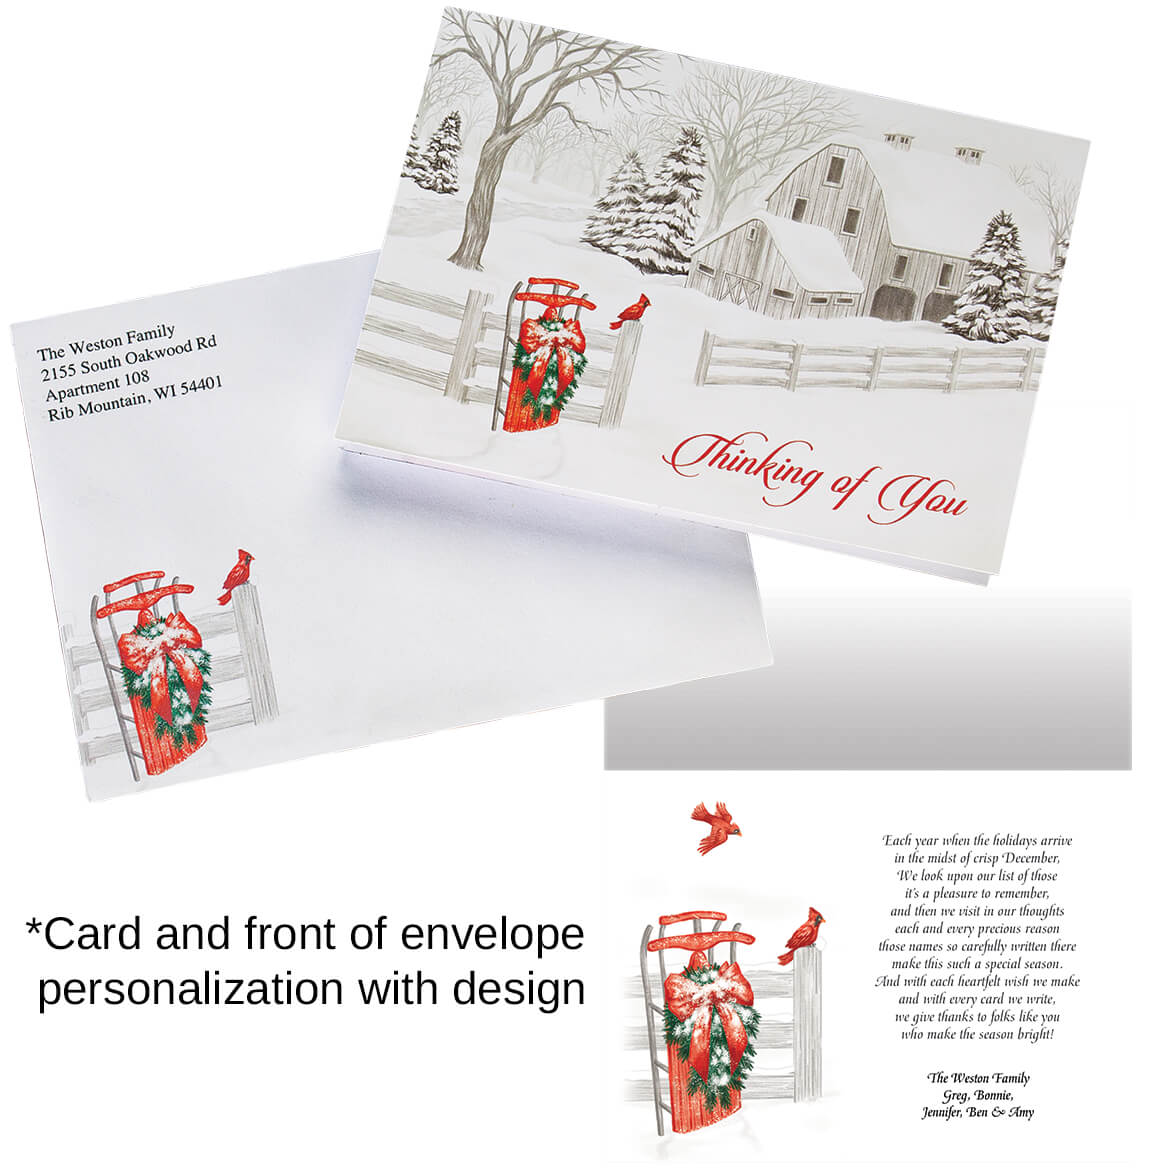 Thinking of You - Personalized Christmas Cards - Miles Kimball